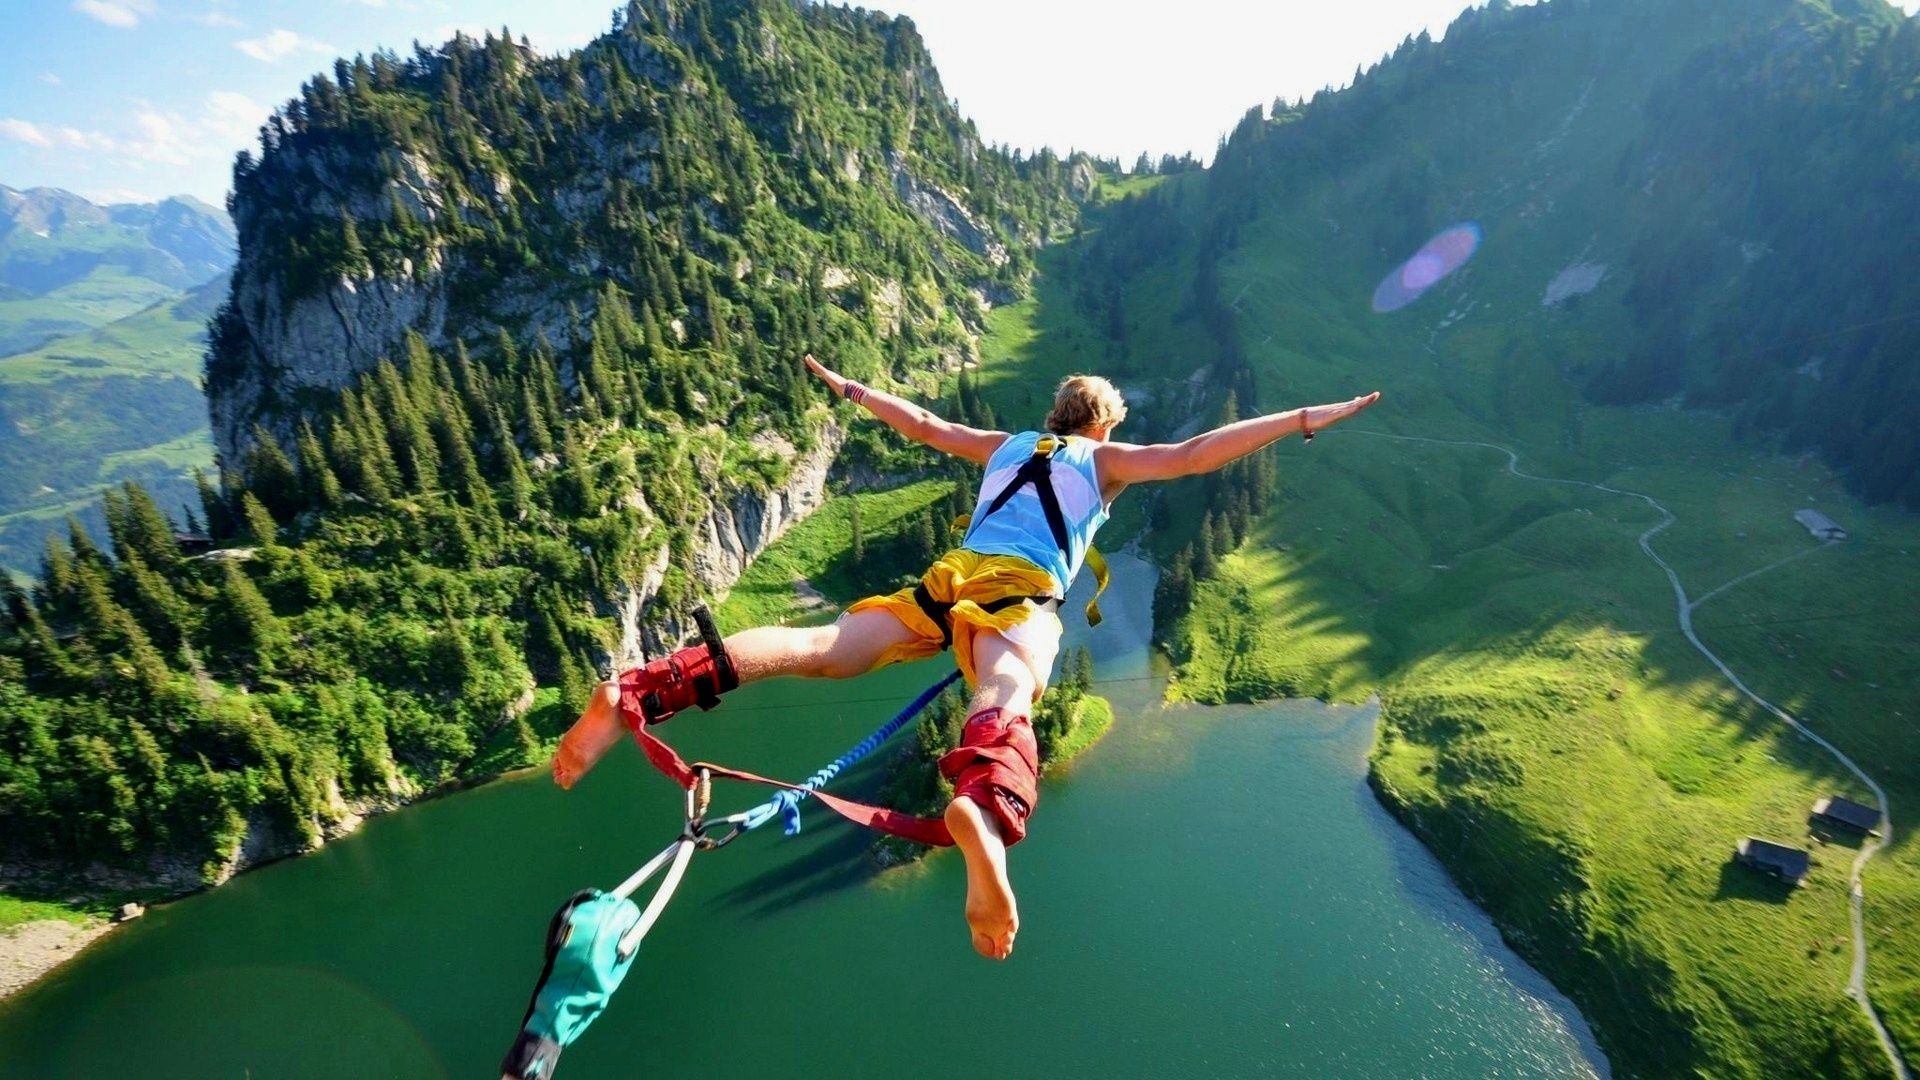 Hd Quality Extreme Sports Outdoor Wallpaper For Desktop Sport